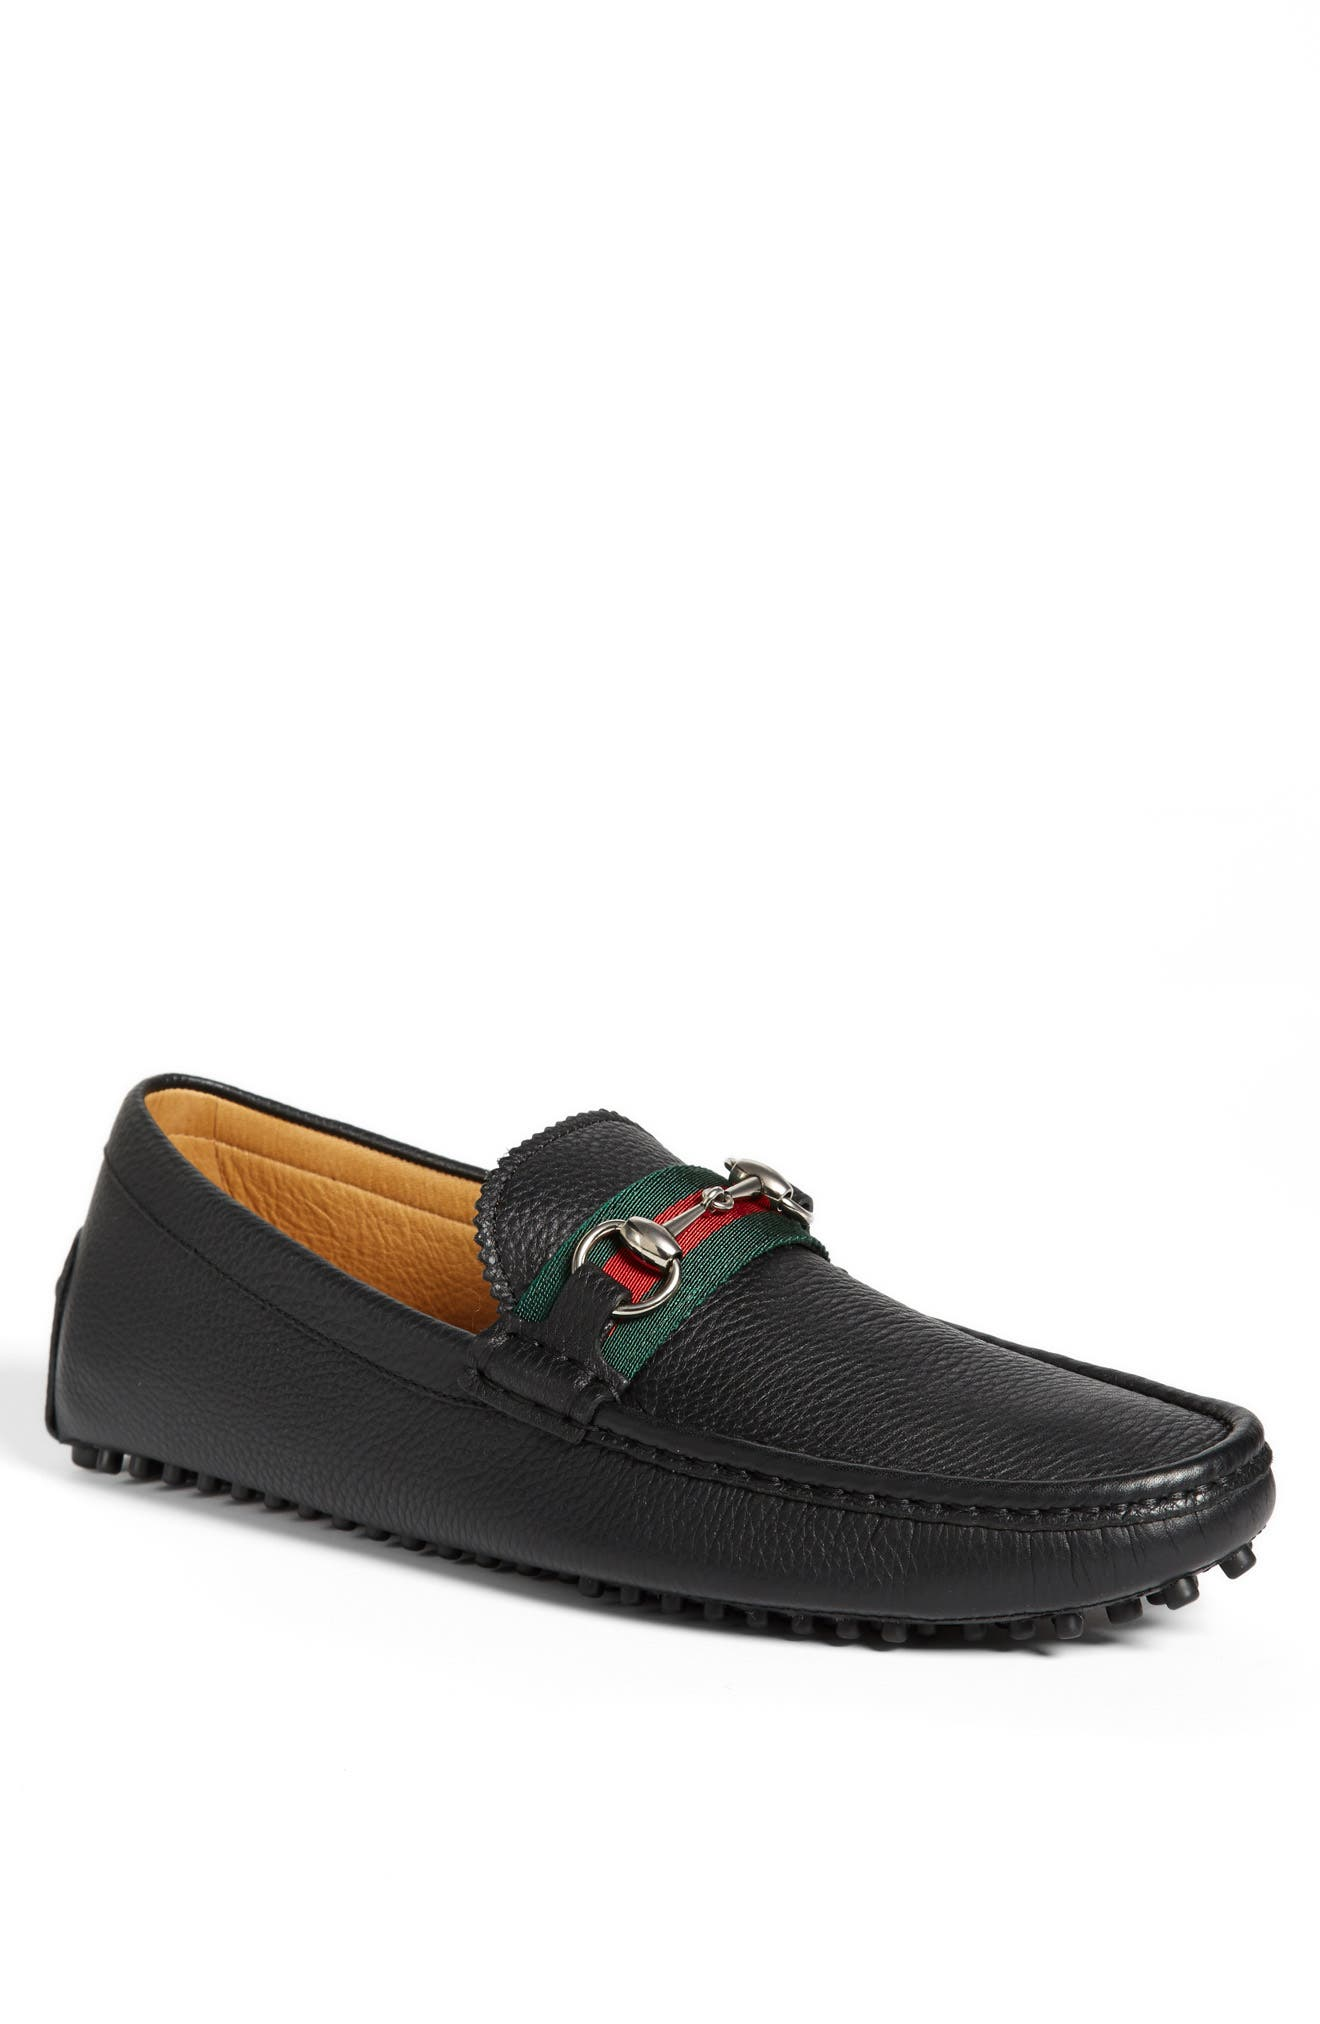 'Damo' Driving Shoe,                             Main thumbnail 1, color,                             BLACK